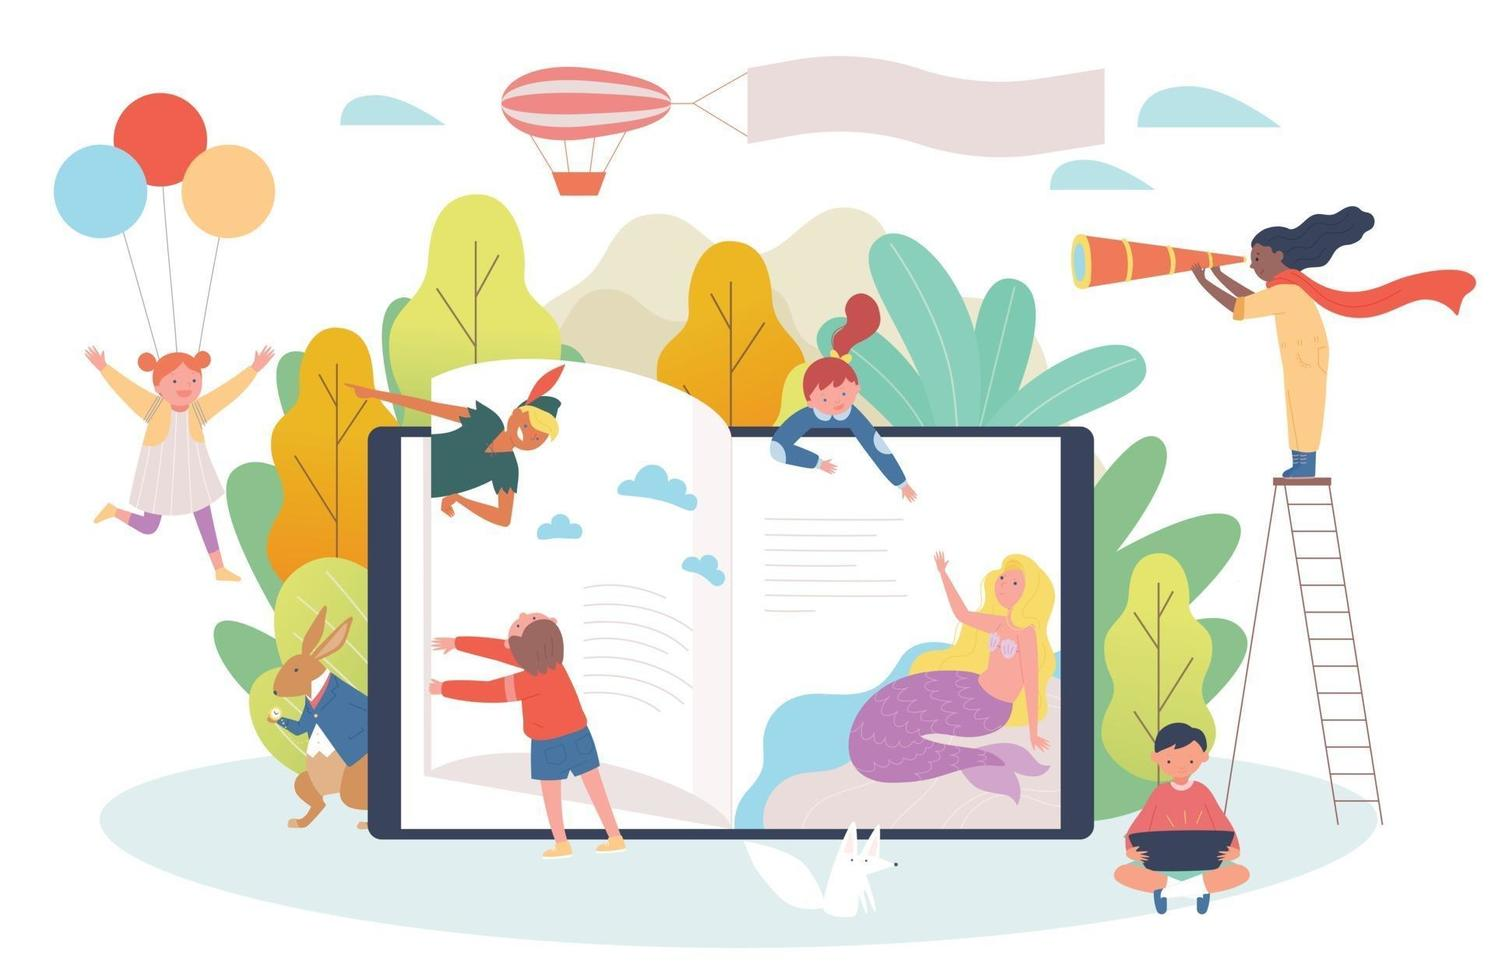 Digital book concept. Children flip through the bookshelves of huge digital devices and characters from fairy tales are popping out. vector